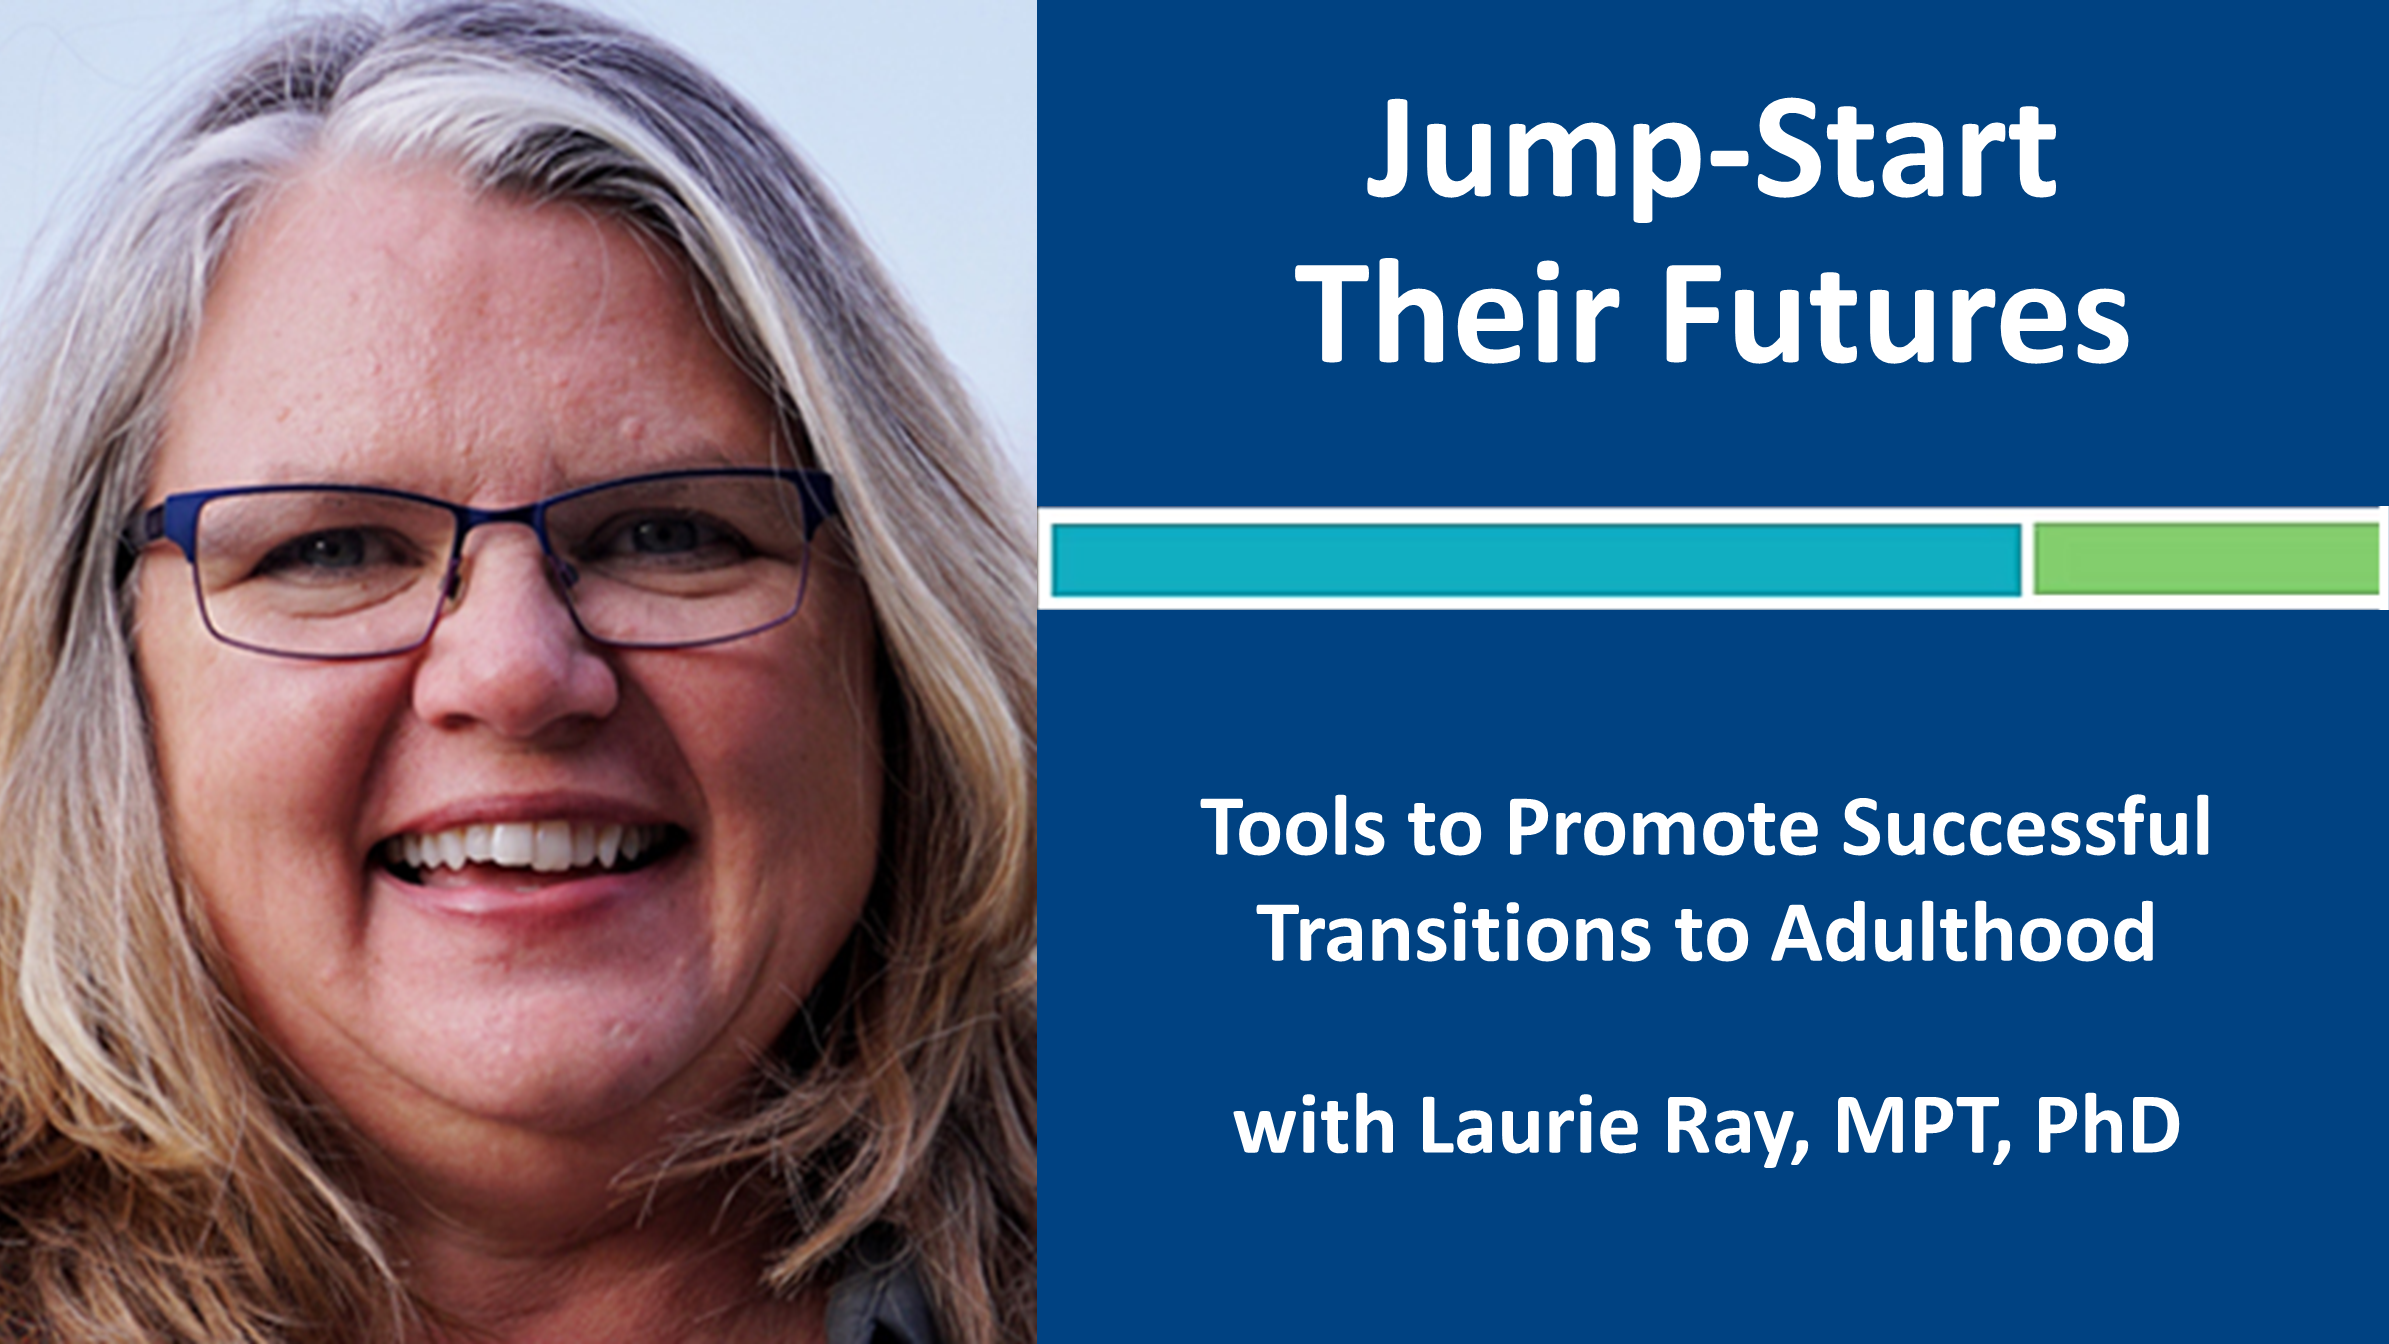 Webinar 8: Jump-Start Their Futures with Laurie Ray, MPT, PhD